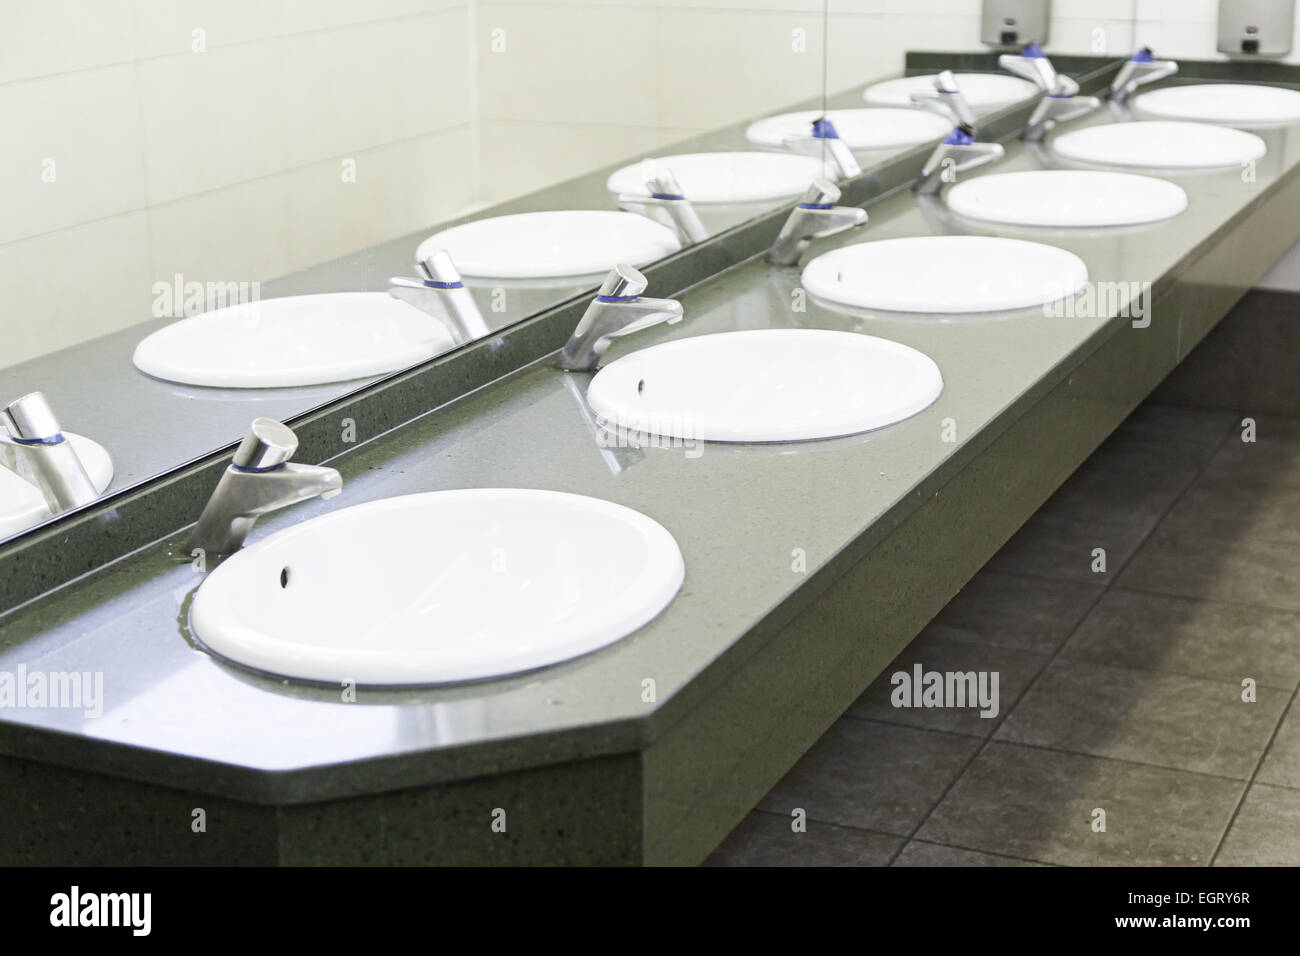 Sinks in a public toilets, sinks in detail about the city, public ...